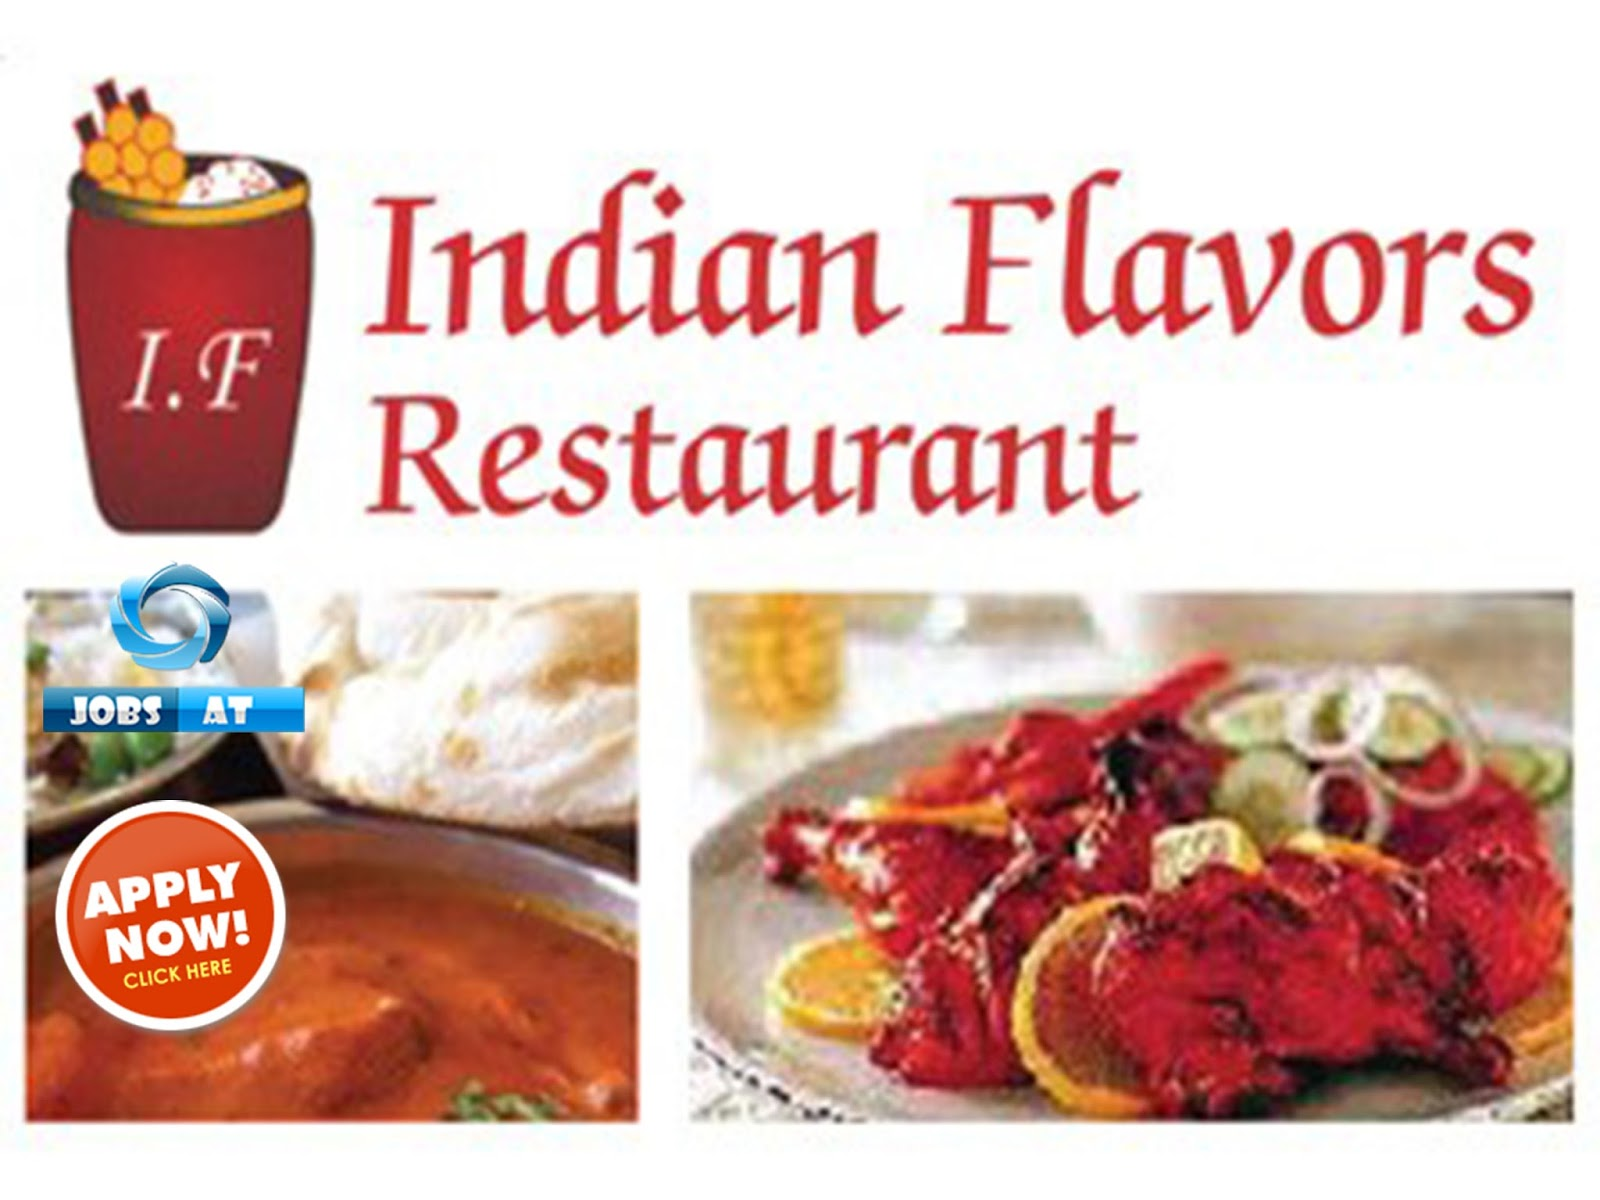 مطعم Indian Flavors Restaurant